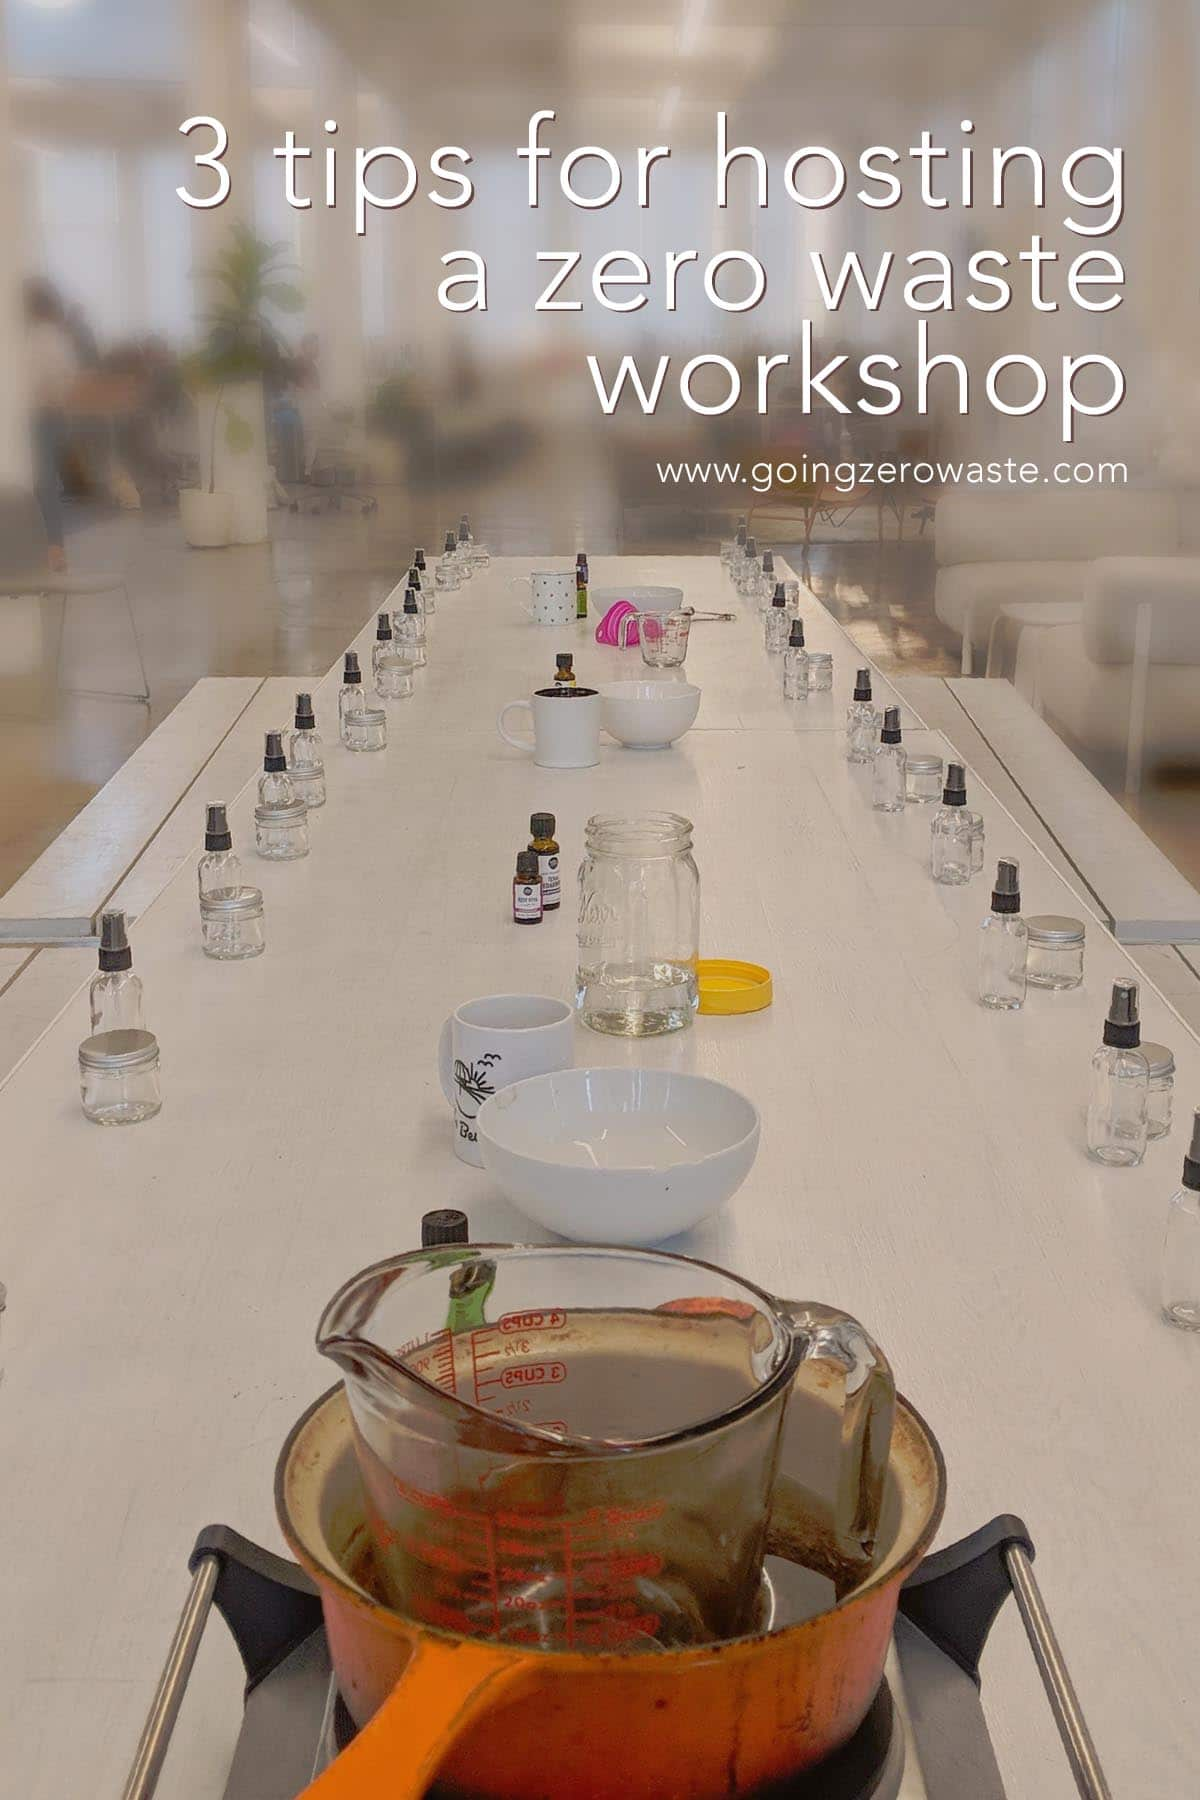 3 Tips for Hosting a Zero Waste Workshop